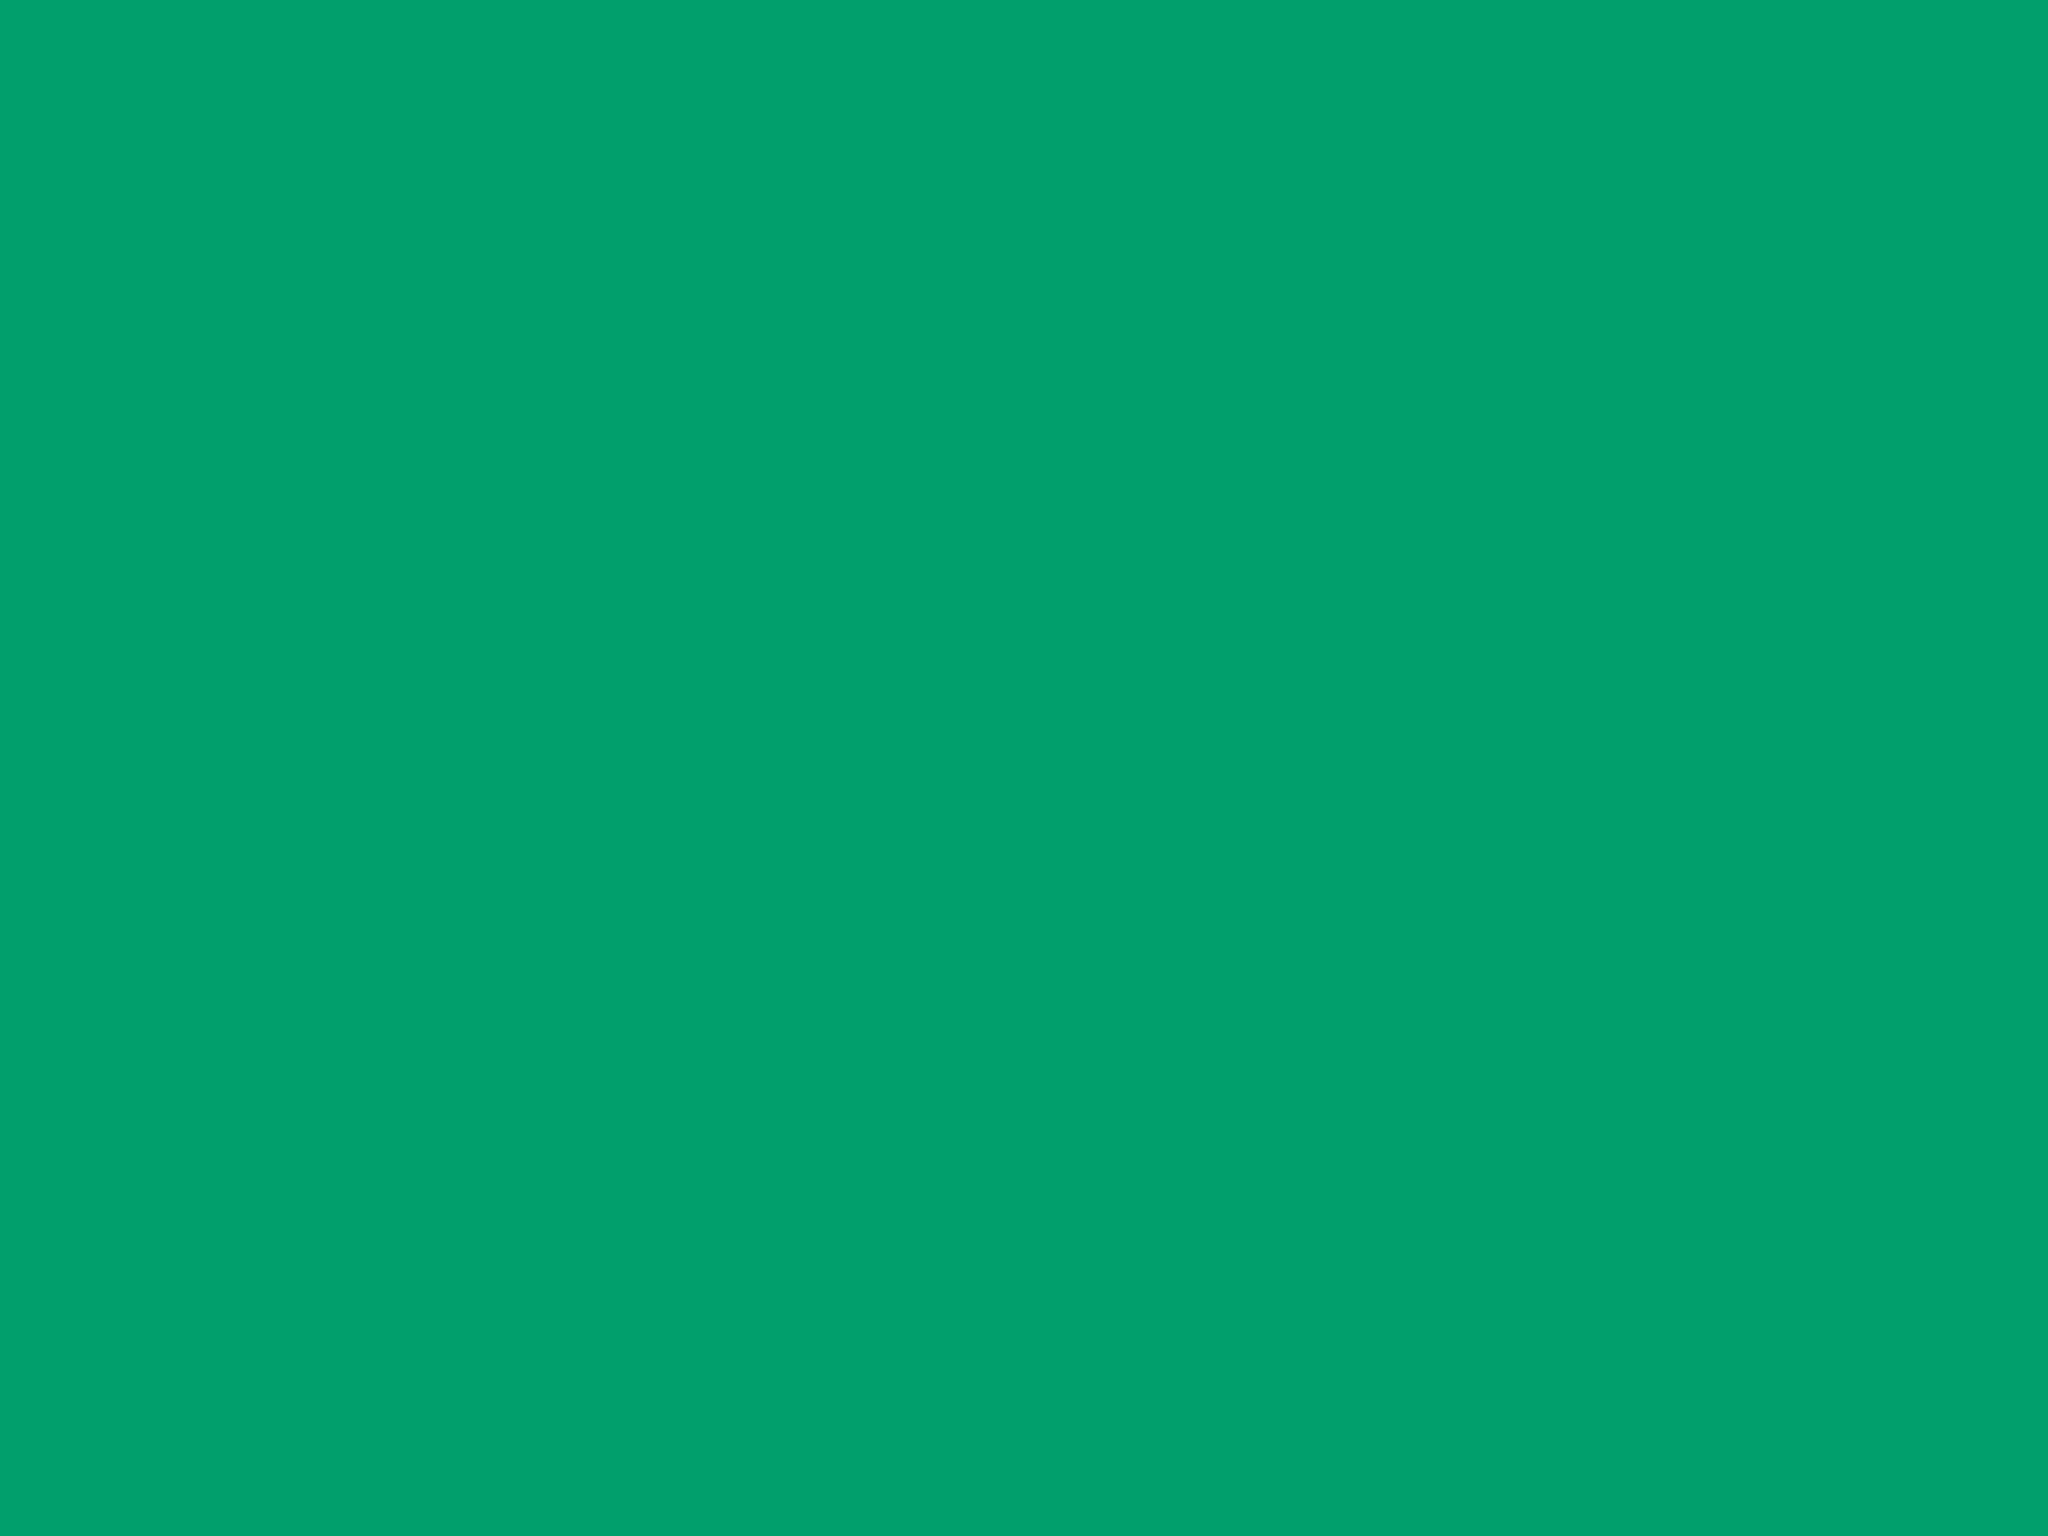 2048x1536 Green NCS Solid Color Background